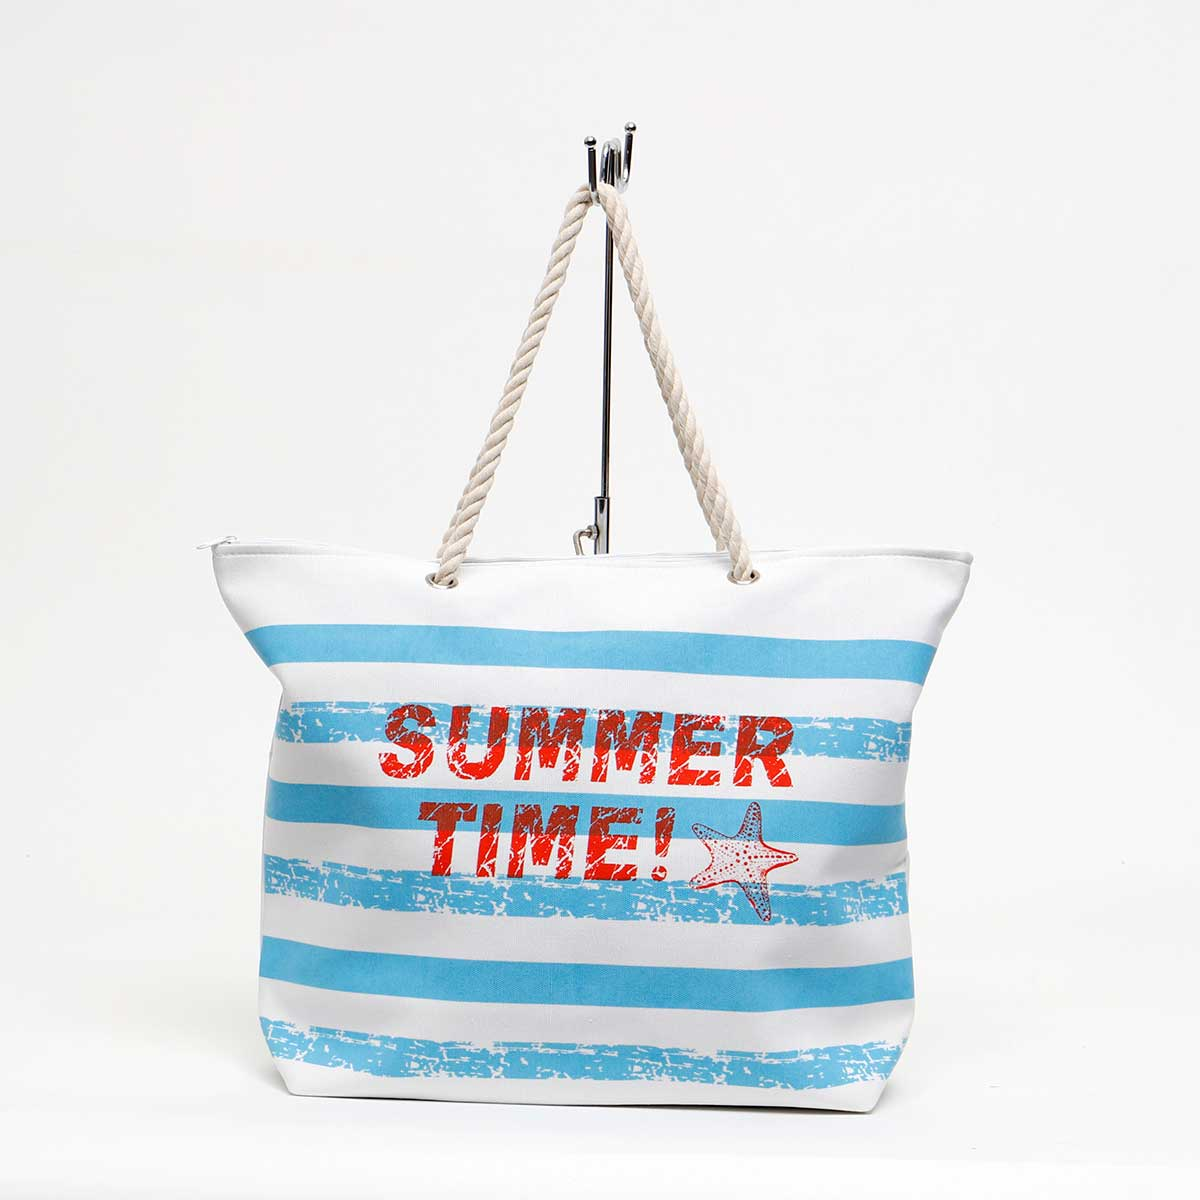 "Blue Summer Time Tote 21""x5.75""x16"" with 8.5"" Rope Handle 70sp"